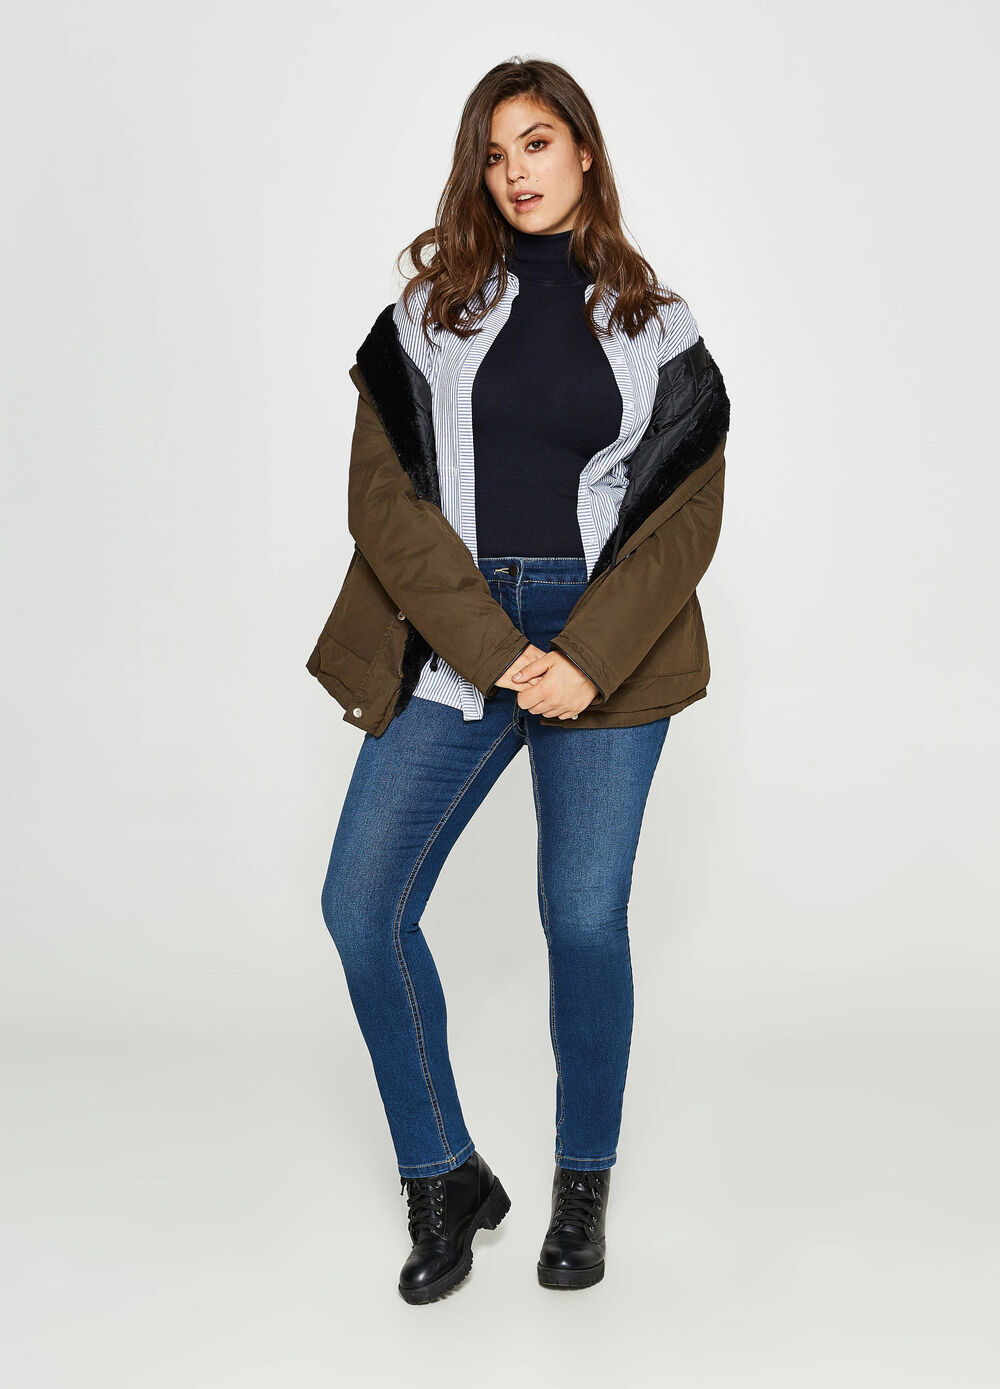 Jeans Relaxed Fit Washed-out-Effekt Curvy